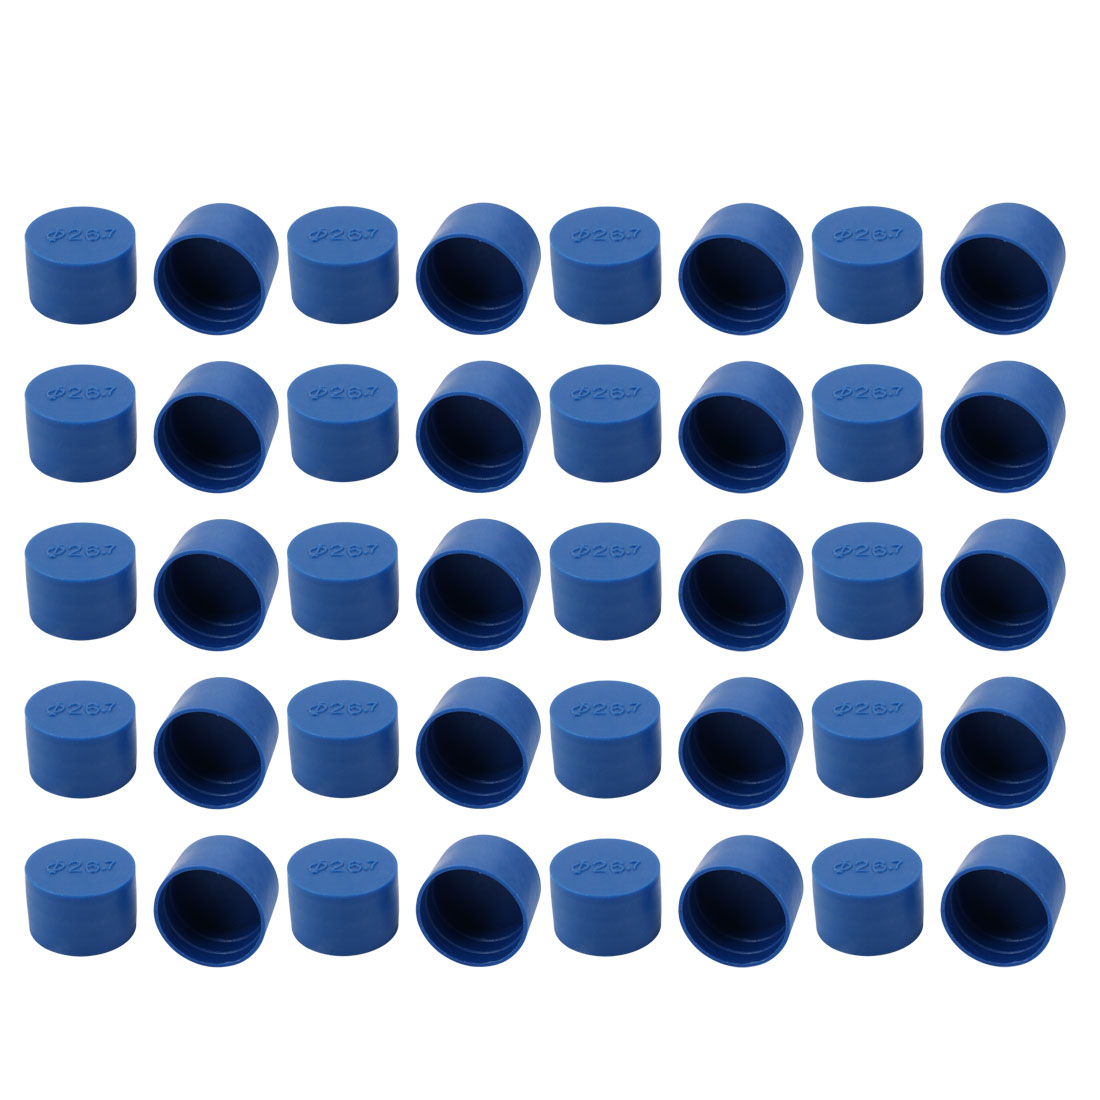 40pcs 26.7mm Inner Dia PE Plastic End Cap Bolt Thread Protector Tube Cover Blue